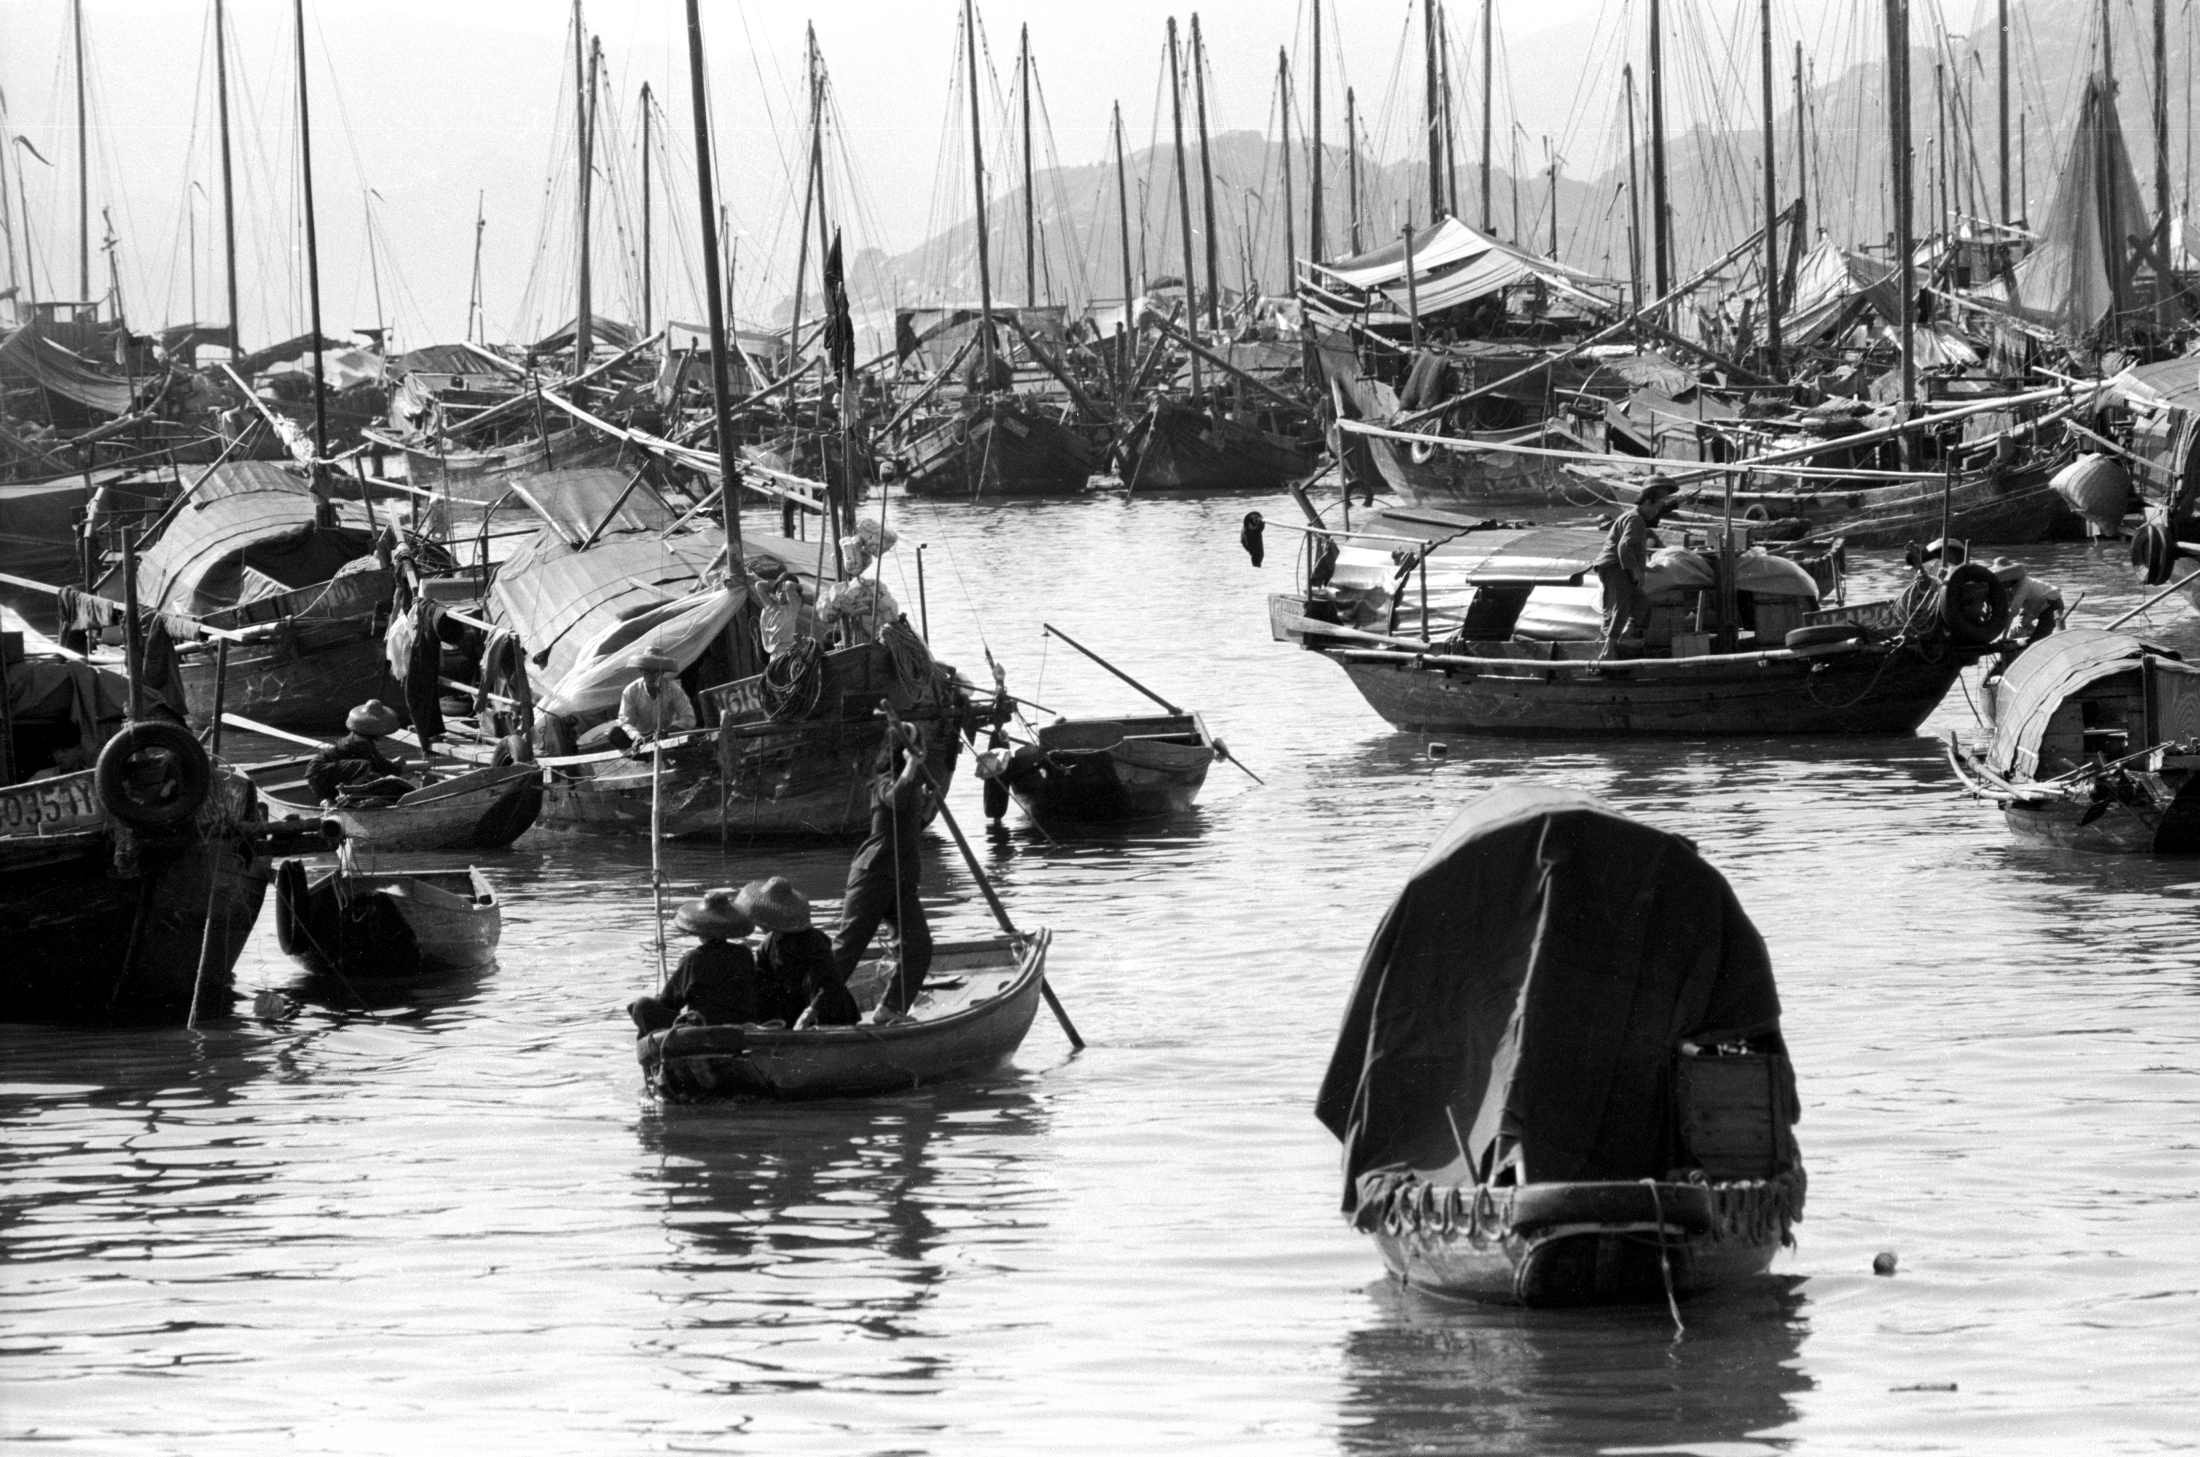 EXCLUSIVELY FEATURED BY EASTPRO - hong kong 1969 - cheung chau island chinese fishermen boat people